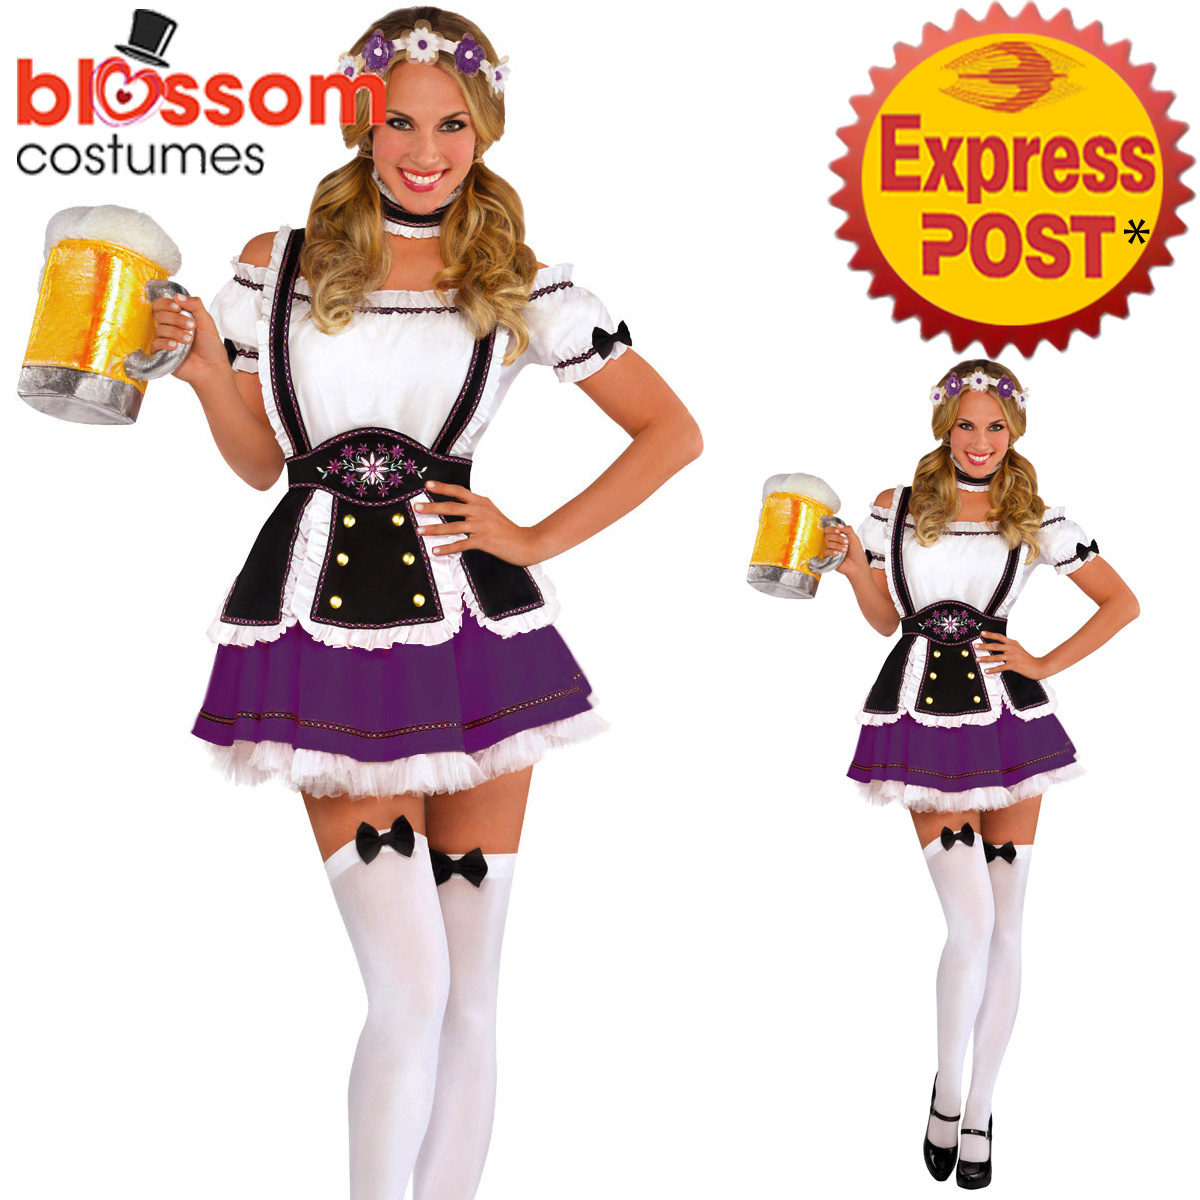 K396-Purple-Oktoberfest-Wench-Ladies-Dress-Up-German-Bavarian-Beer-Girl-Costume